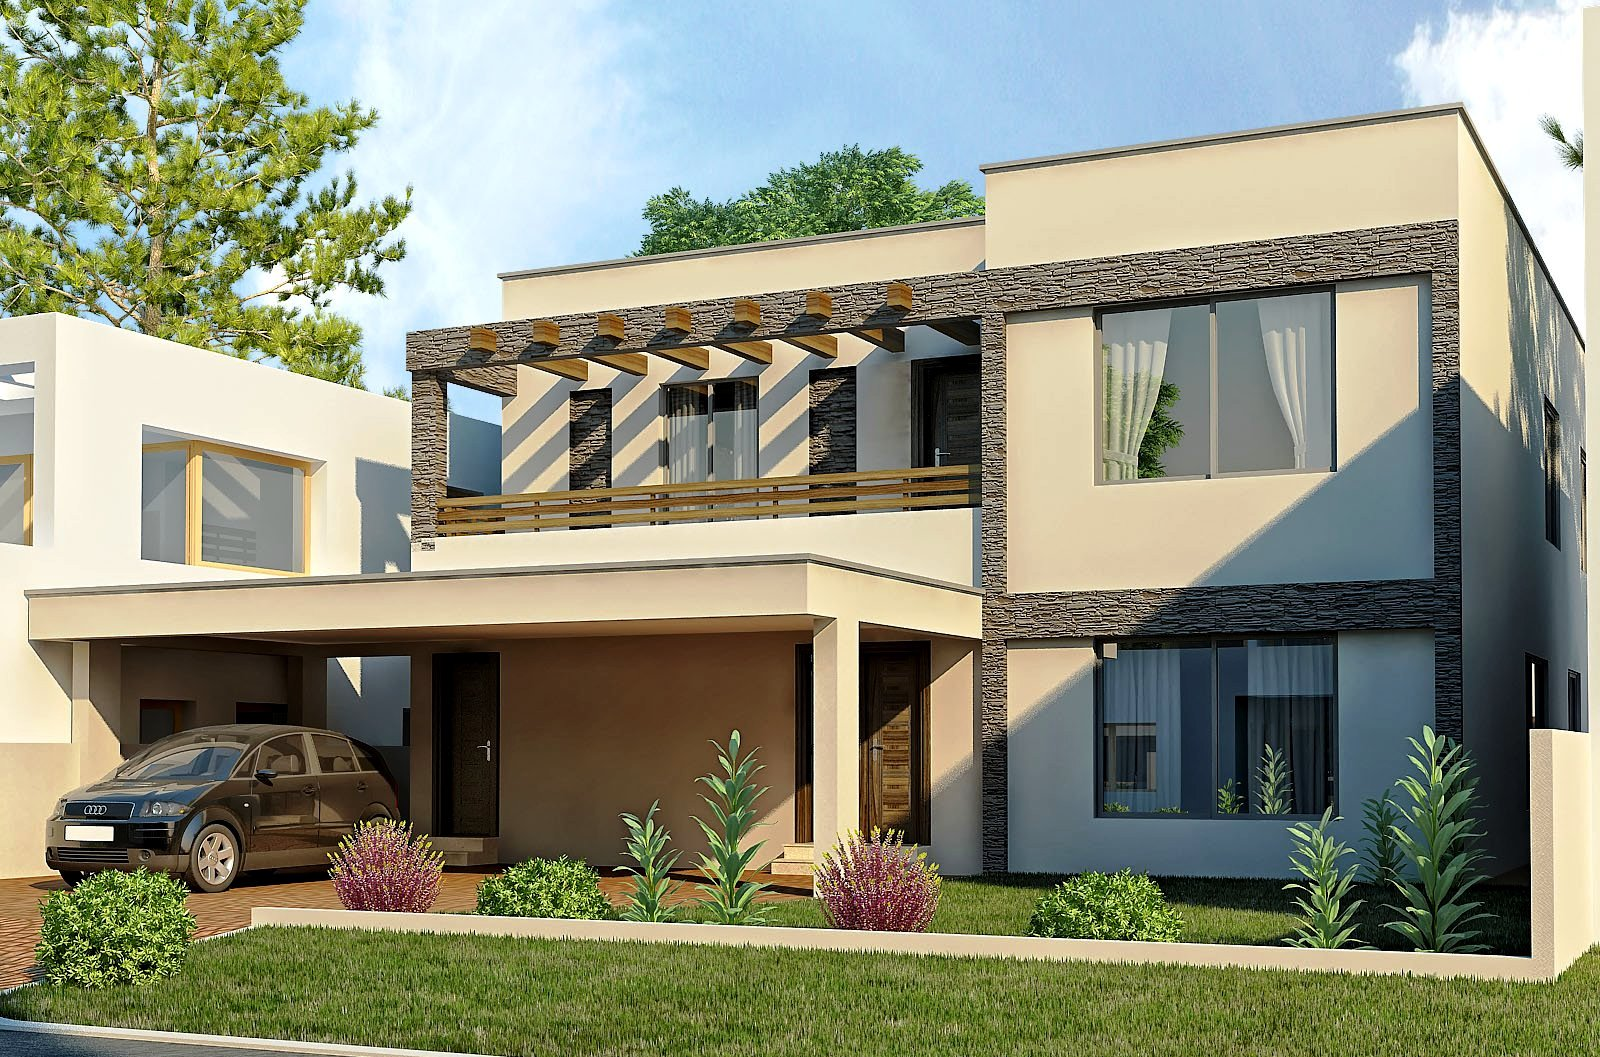 New home designs latest modern homes exterior designs views for Modern house design with garden